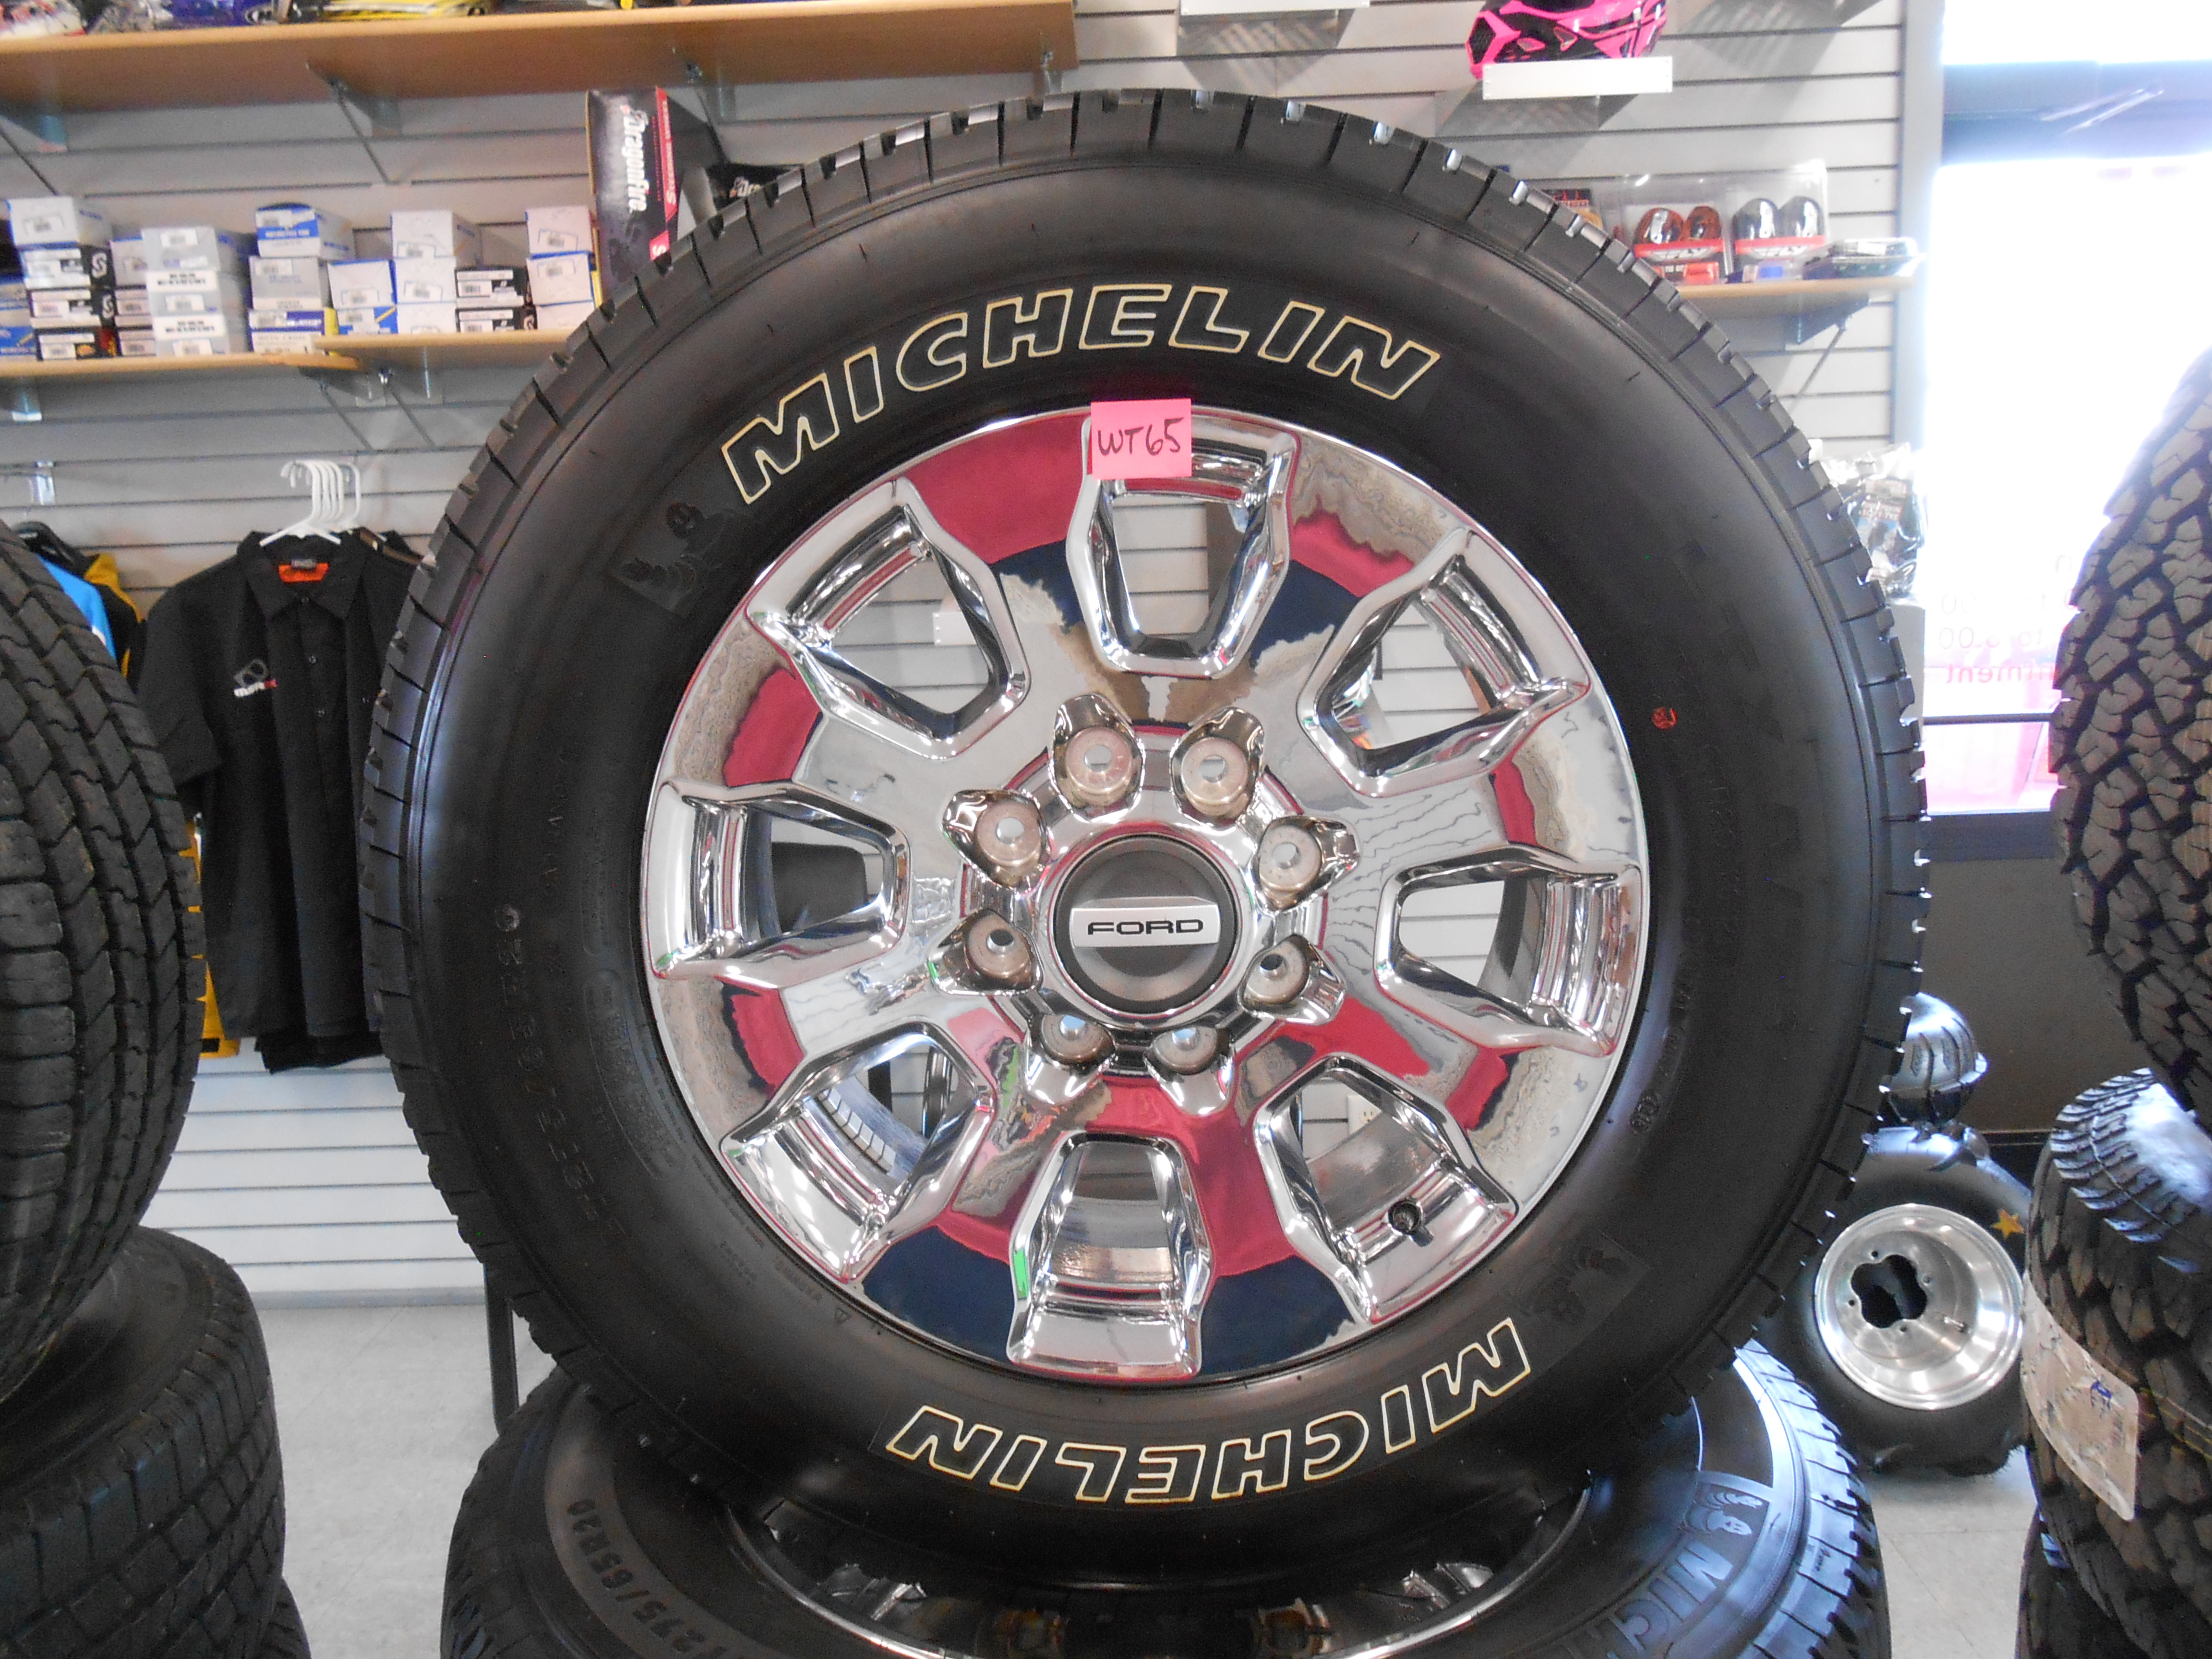 tread ford maintenance the a inner engineered are info intended their for liner trucks crown tires constructed information ply general sidewall consist of how bfggoodteartire bead carcass tos plies and purposely s